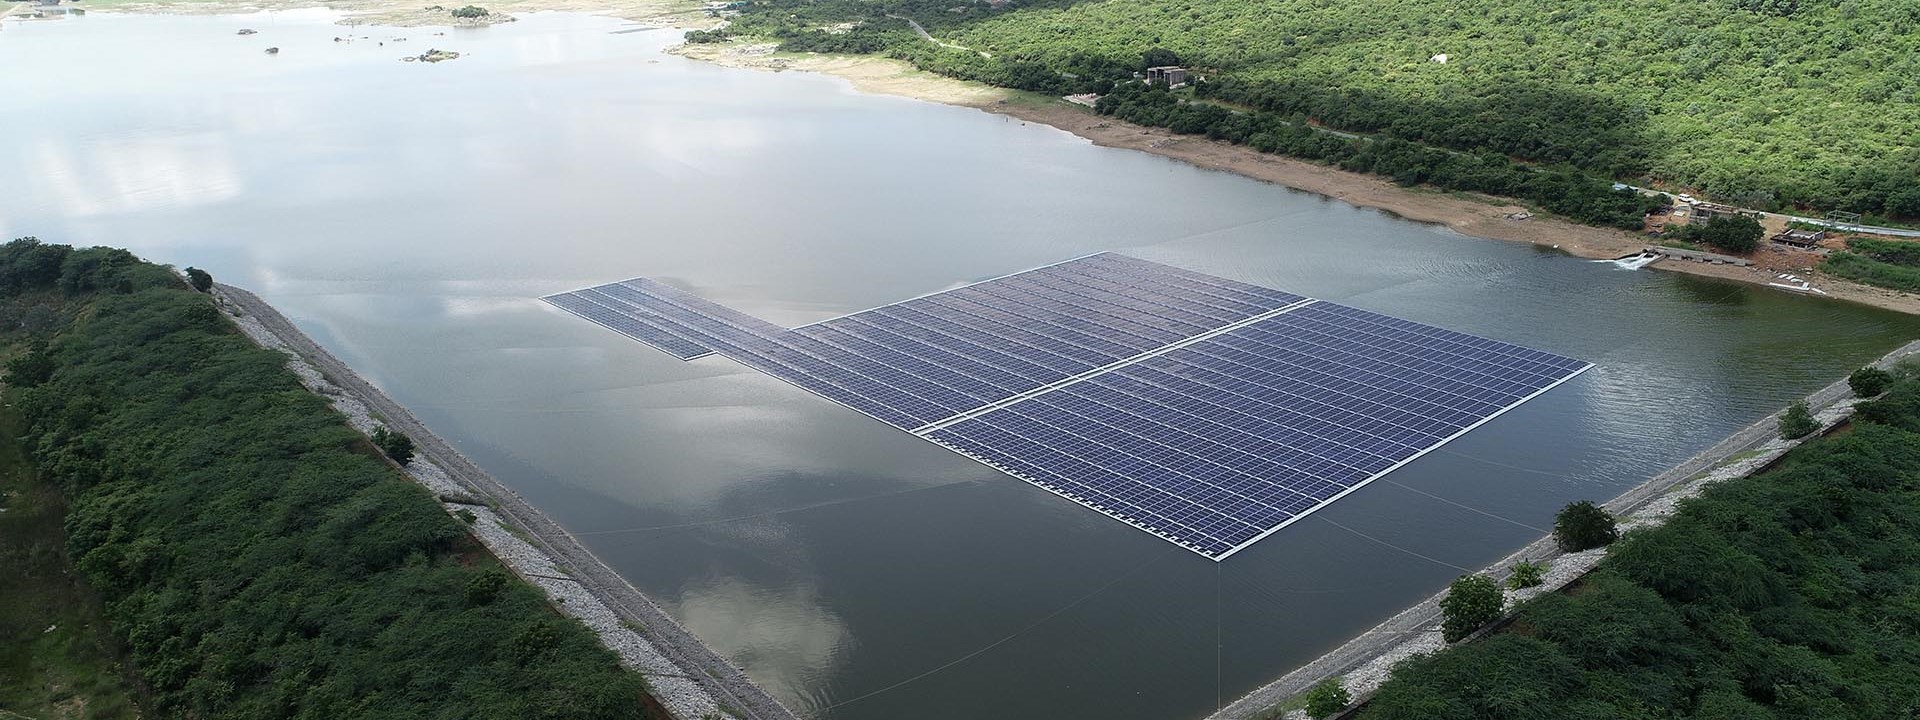 https://www.advanticsys.com/wp-content/uploads/2020/10/4mwp-floating-solar-pv-project-in-andhra-pradesh_photo1.jpg